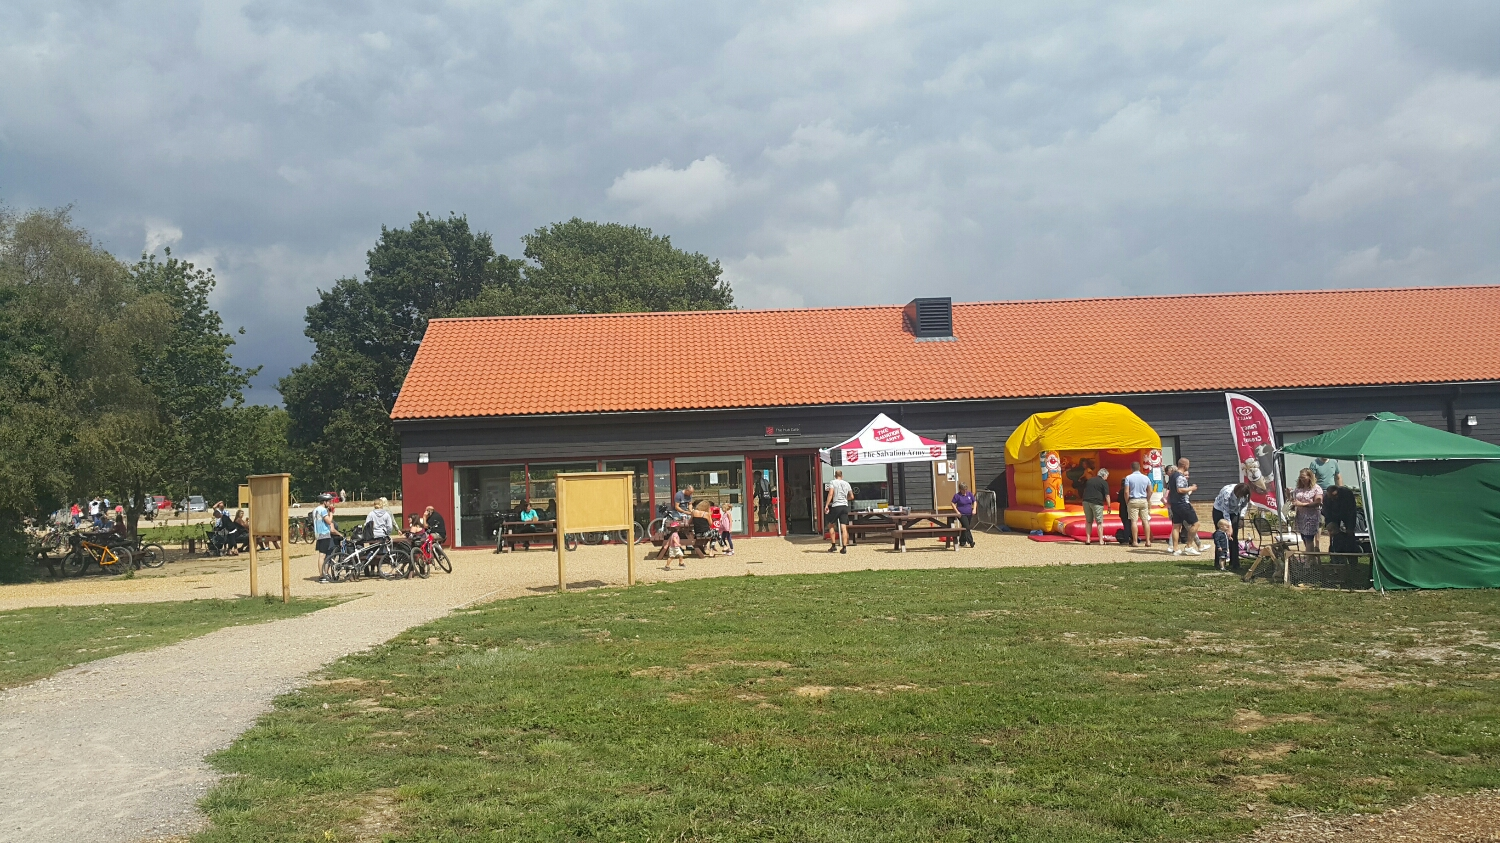 shop and facilities. Bike shop round the back